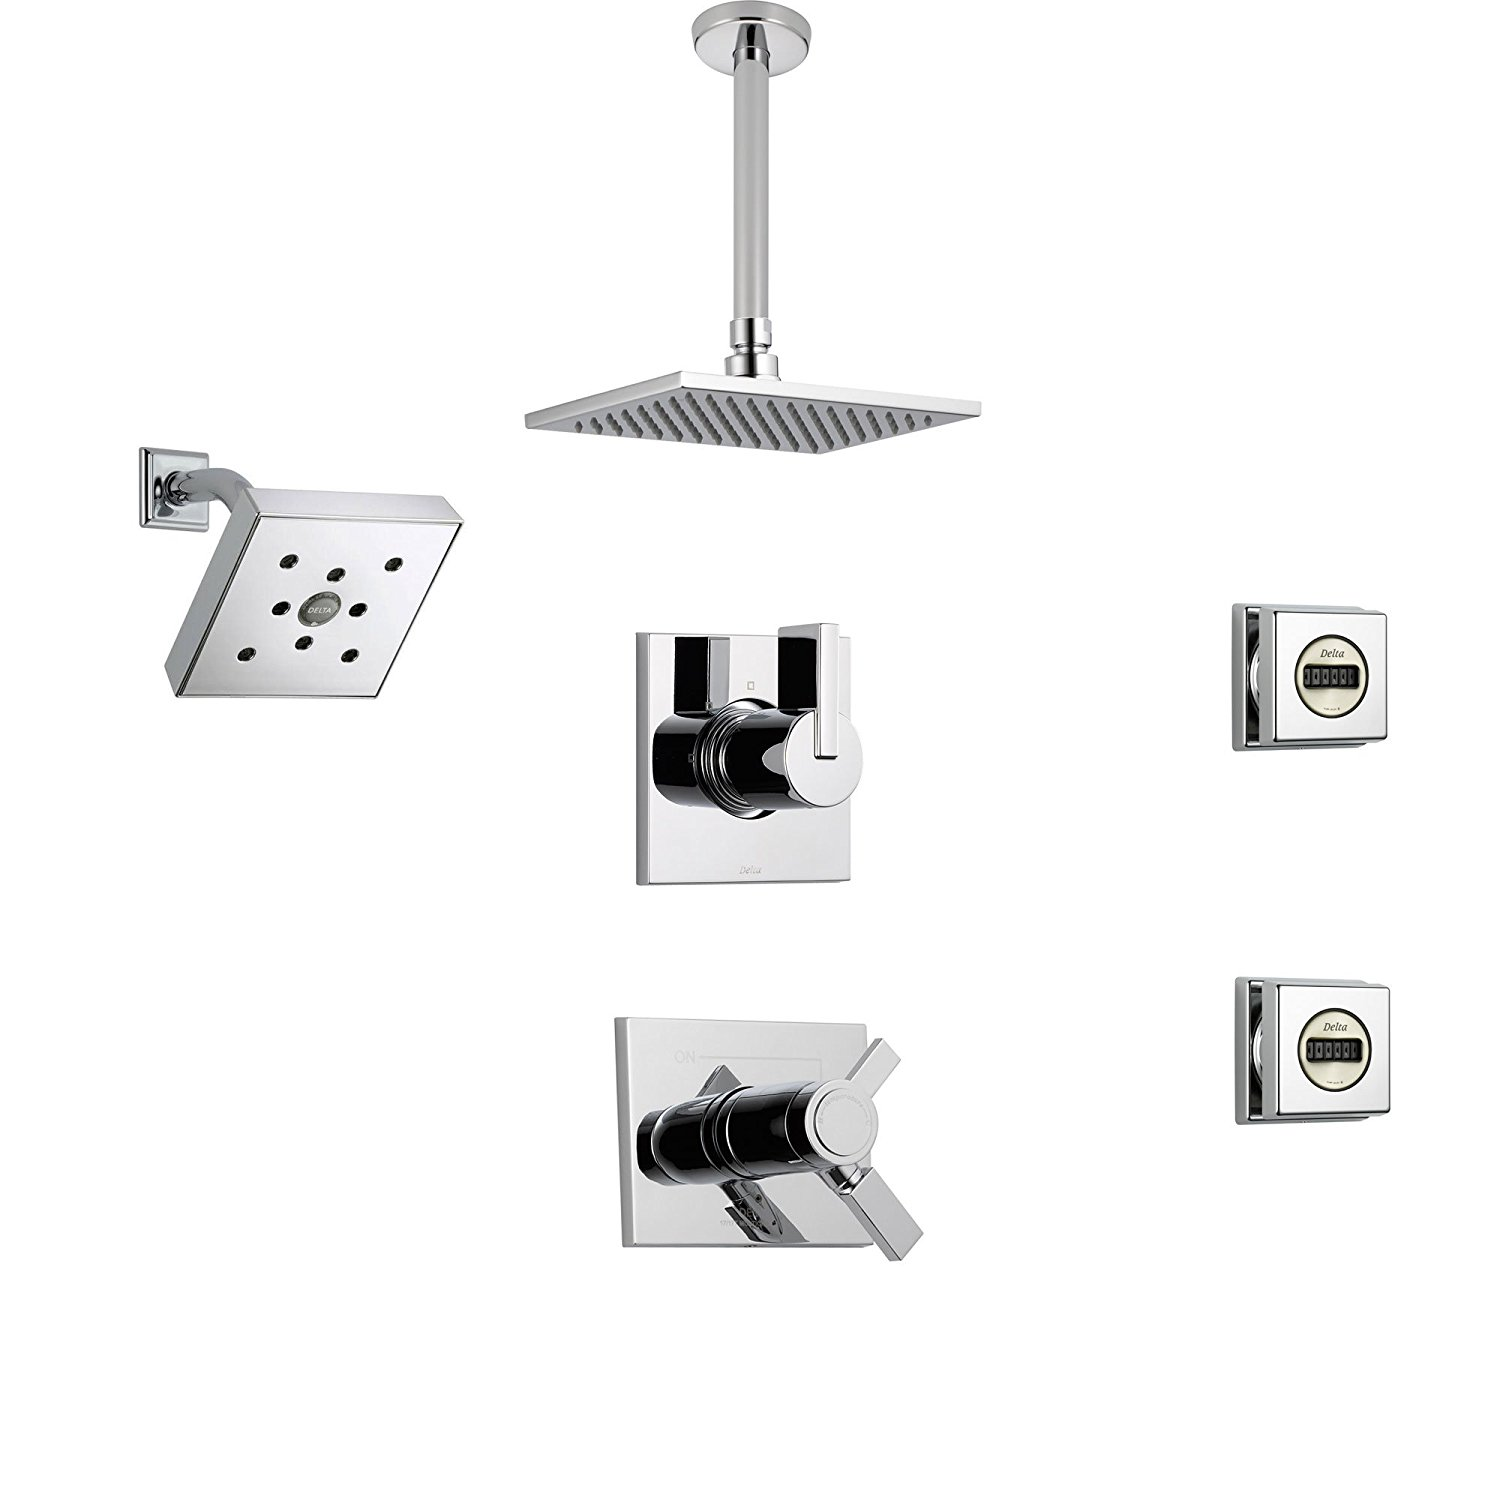 Delta Shower Diverter Cheap Delta Shower Diverter Find Delta Shower Diverter Deals On